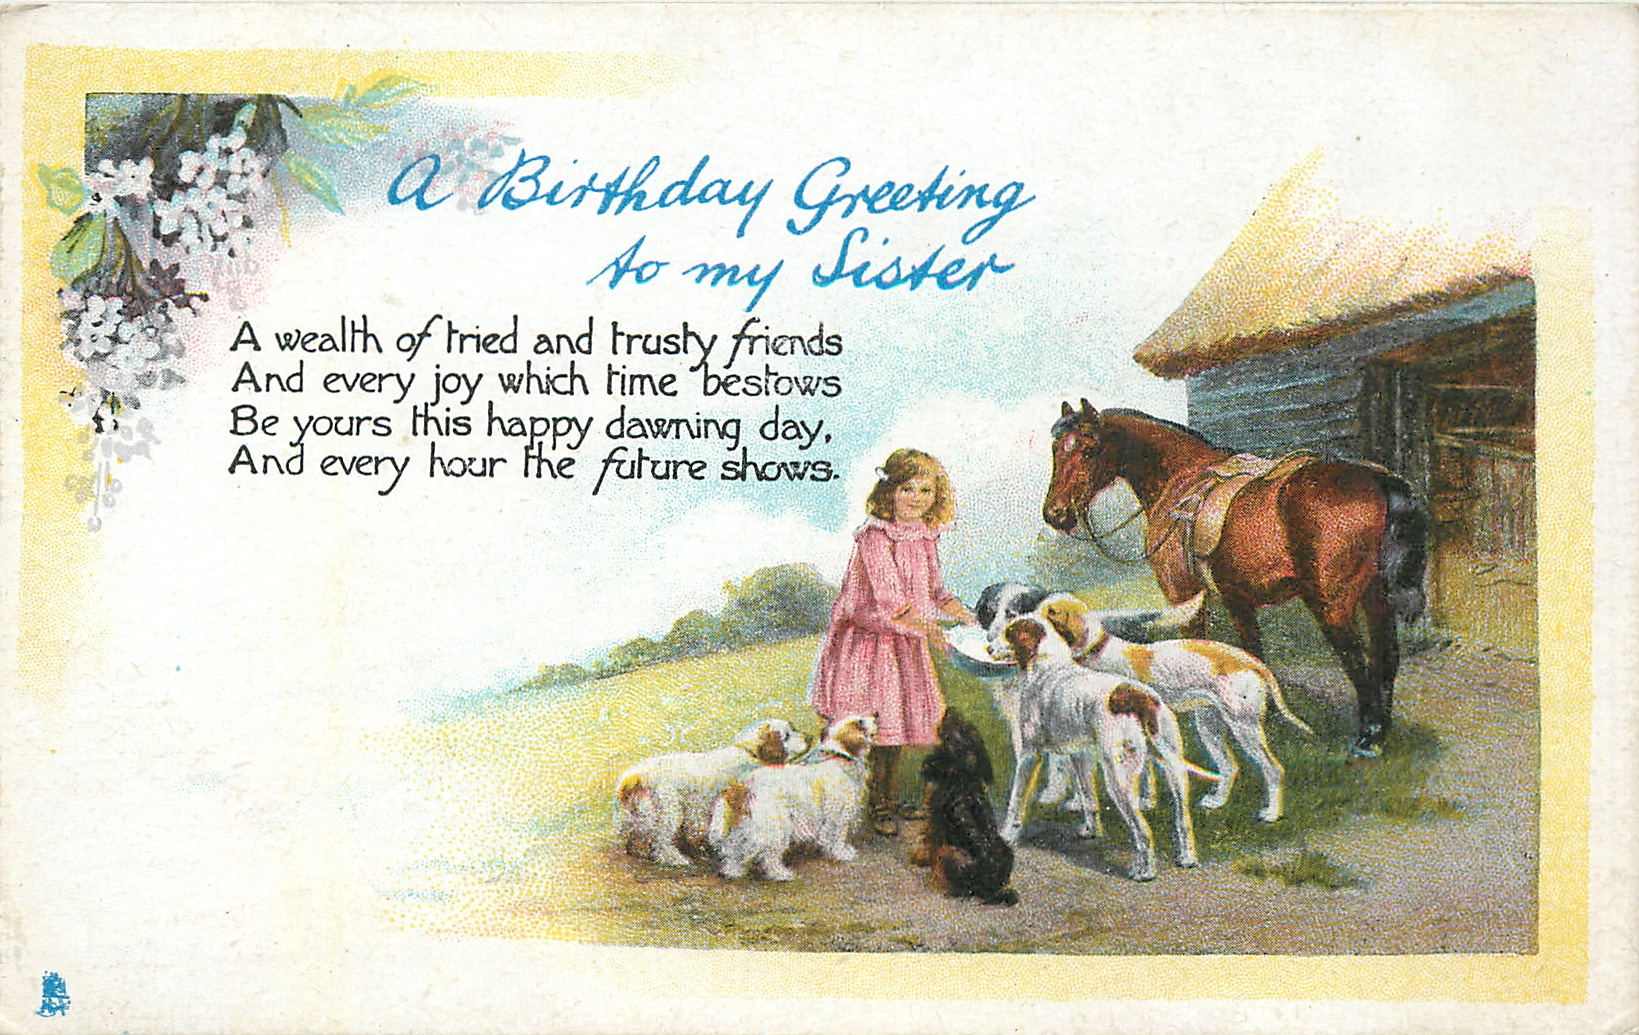 A Birthday Greeting To My Sister Girl Feeding Dogs Horse Barn Right Tuckdb Postcards